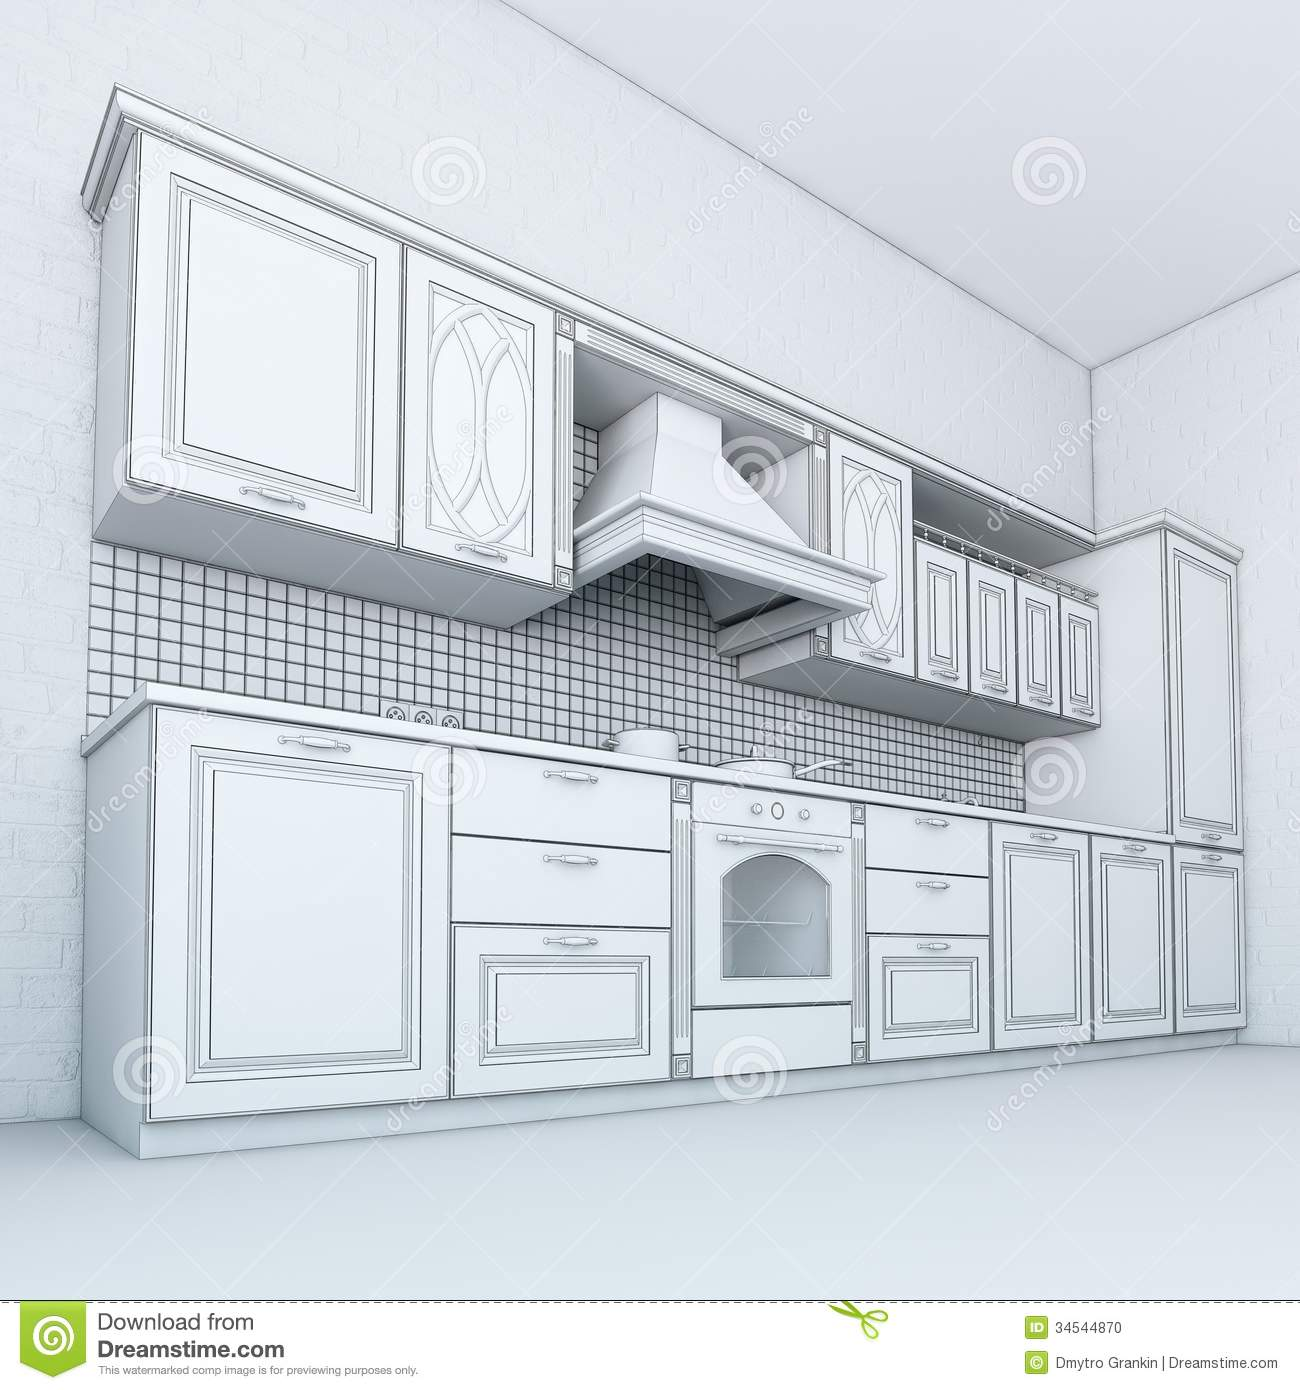 Rough Draft Of Classic Kitchen Cabinet Stock Photo - Image: 34544870